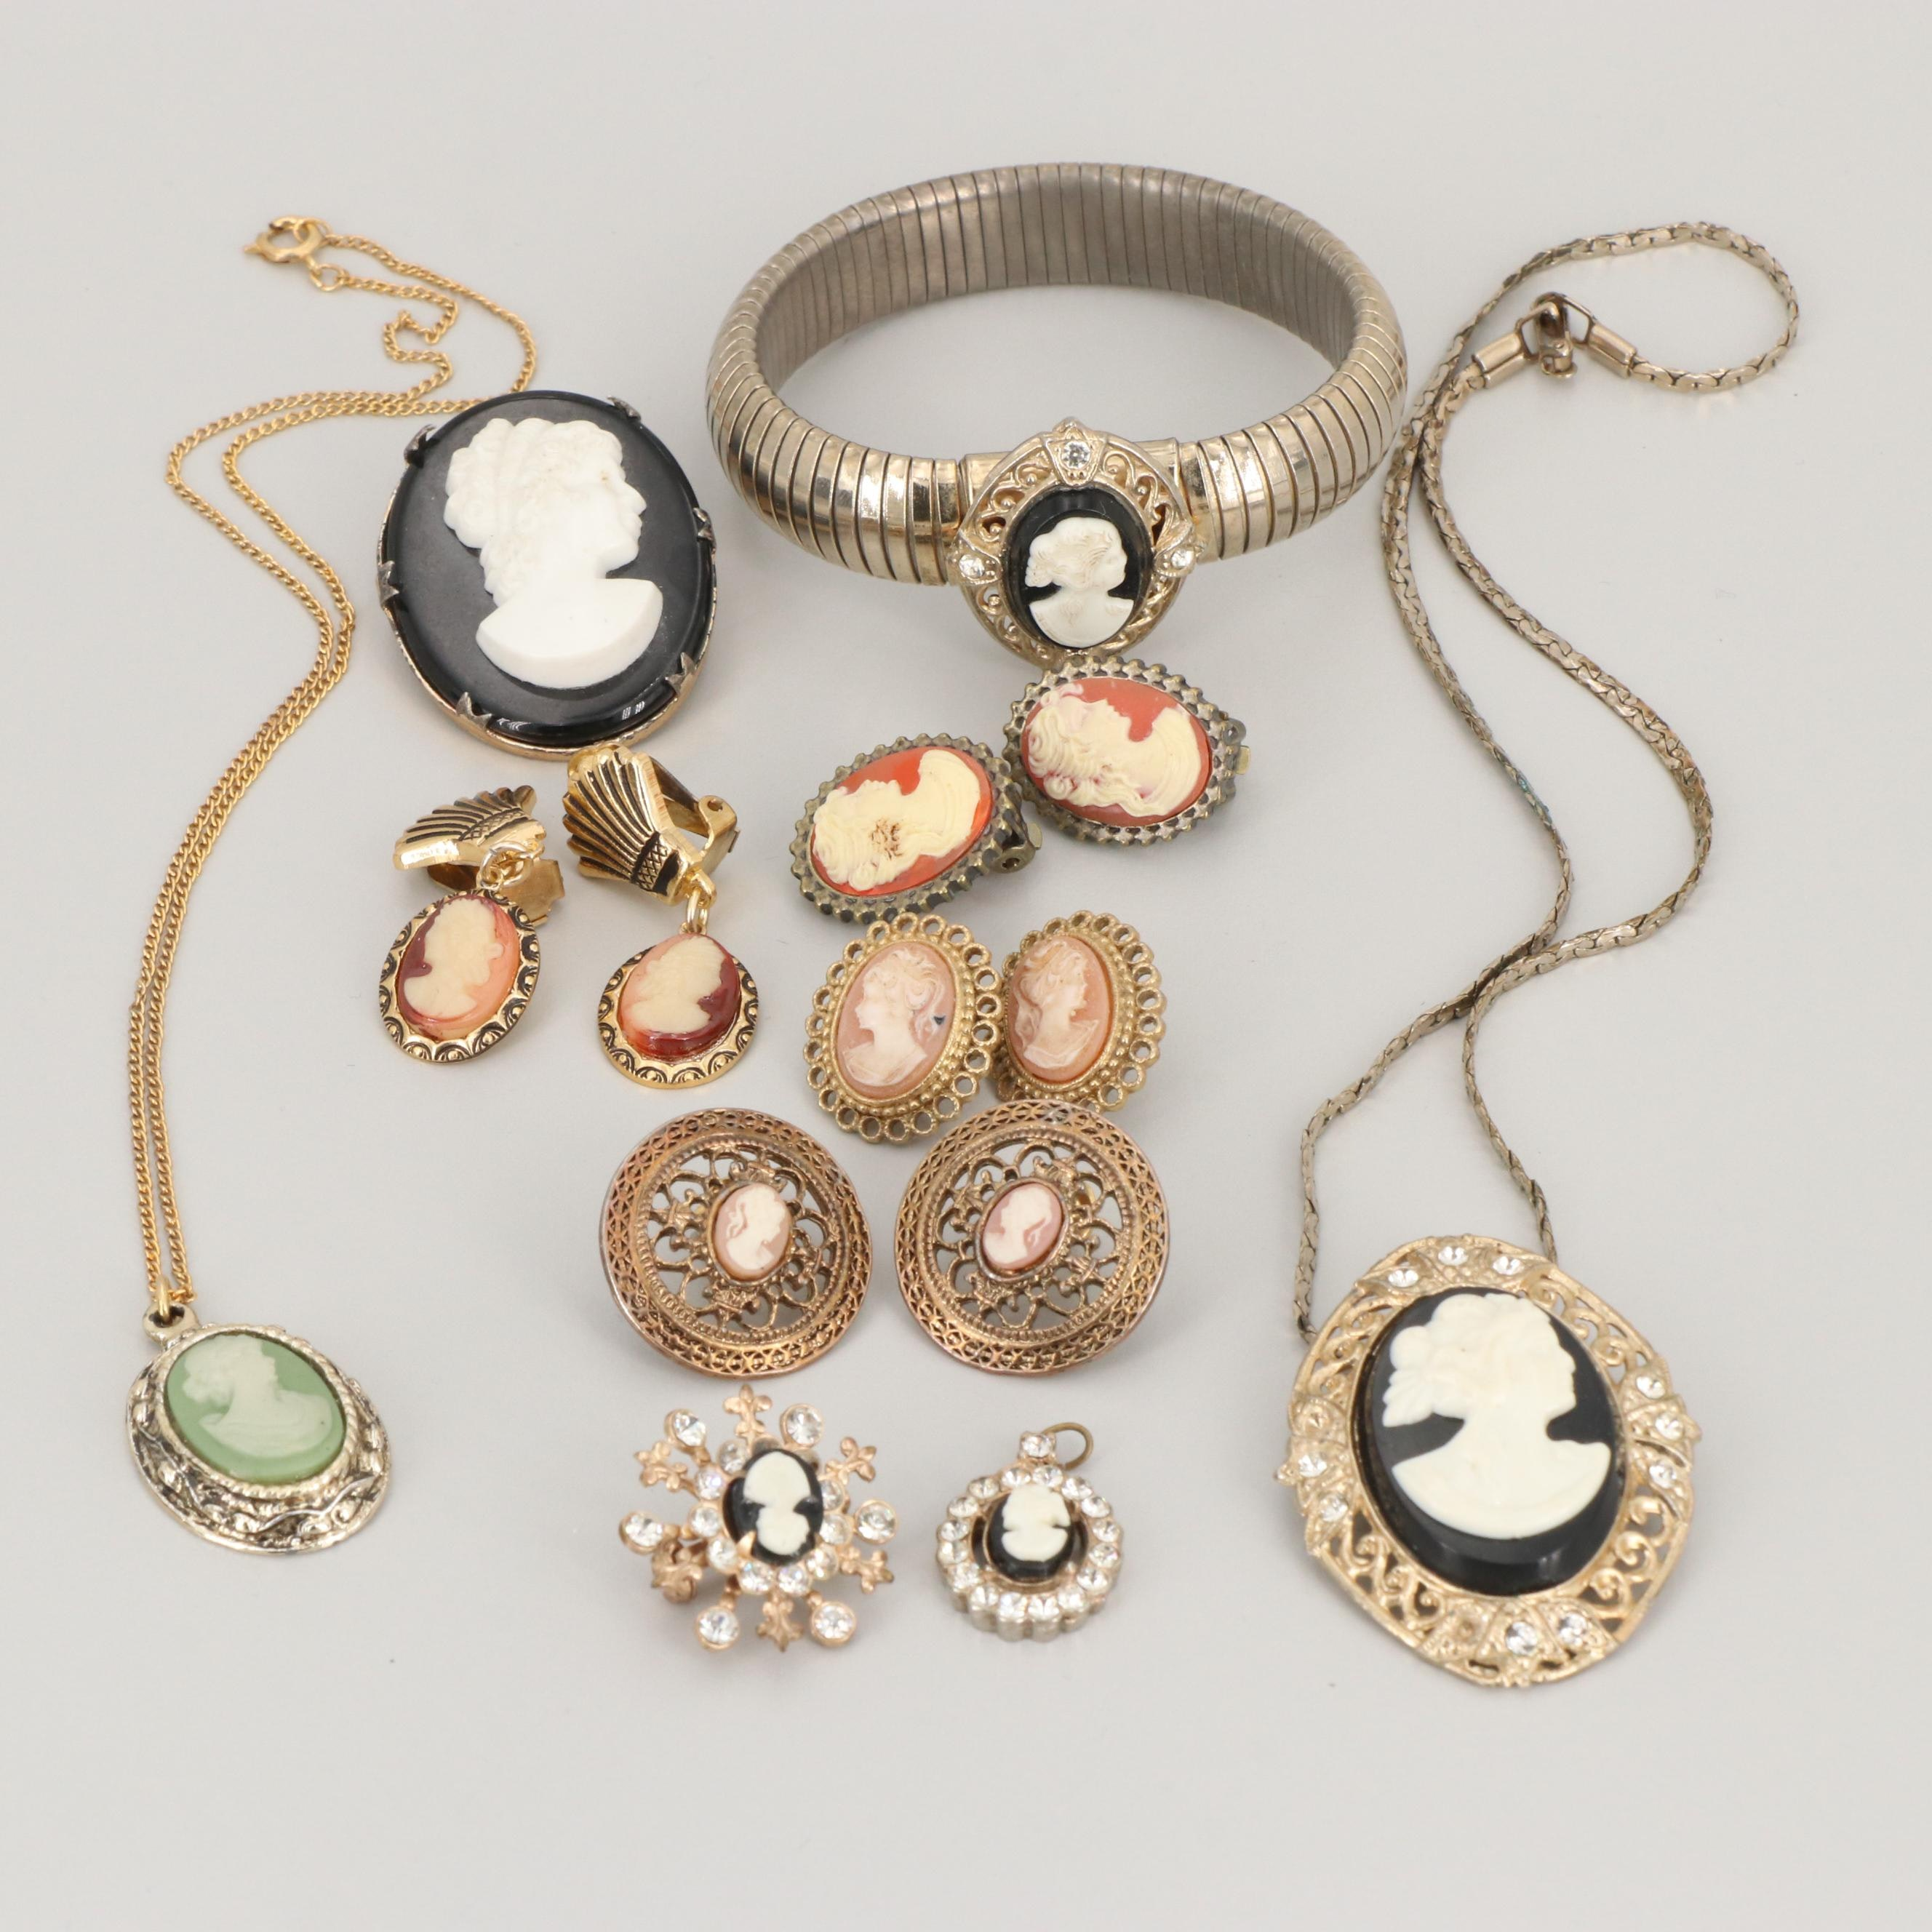 Silver Gold Tone Foilback and Resin Cameo Jewelry Including a Sterling Brooch